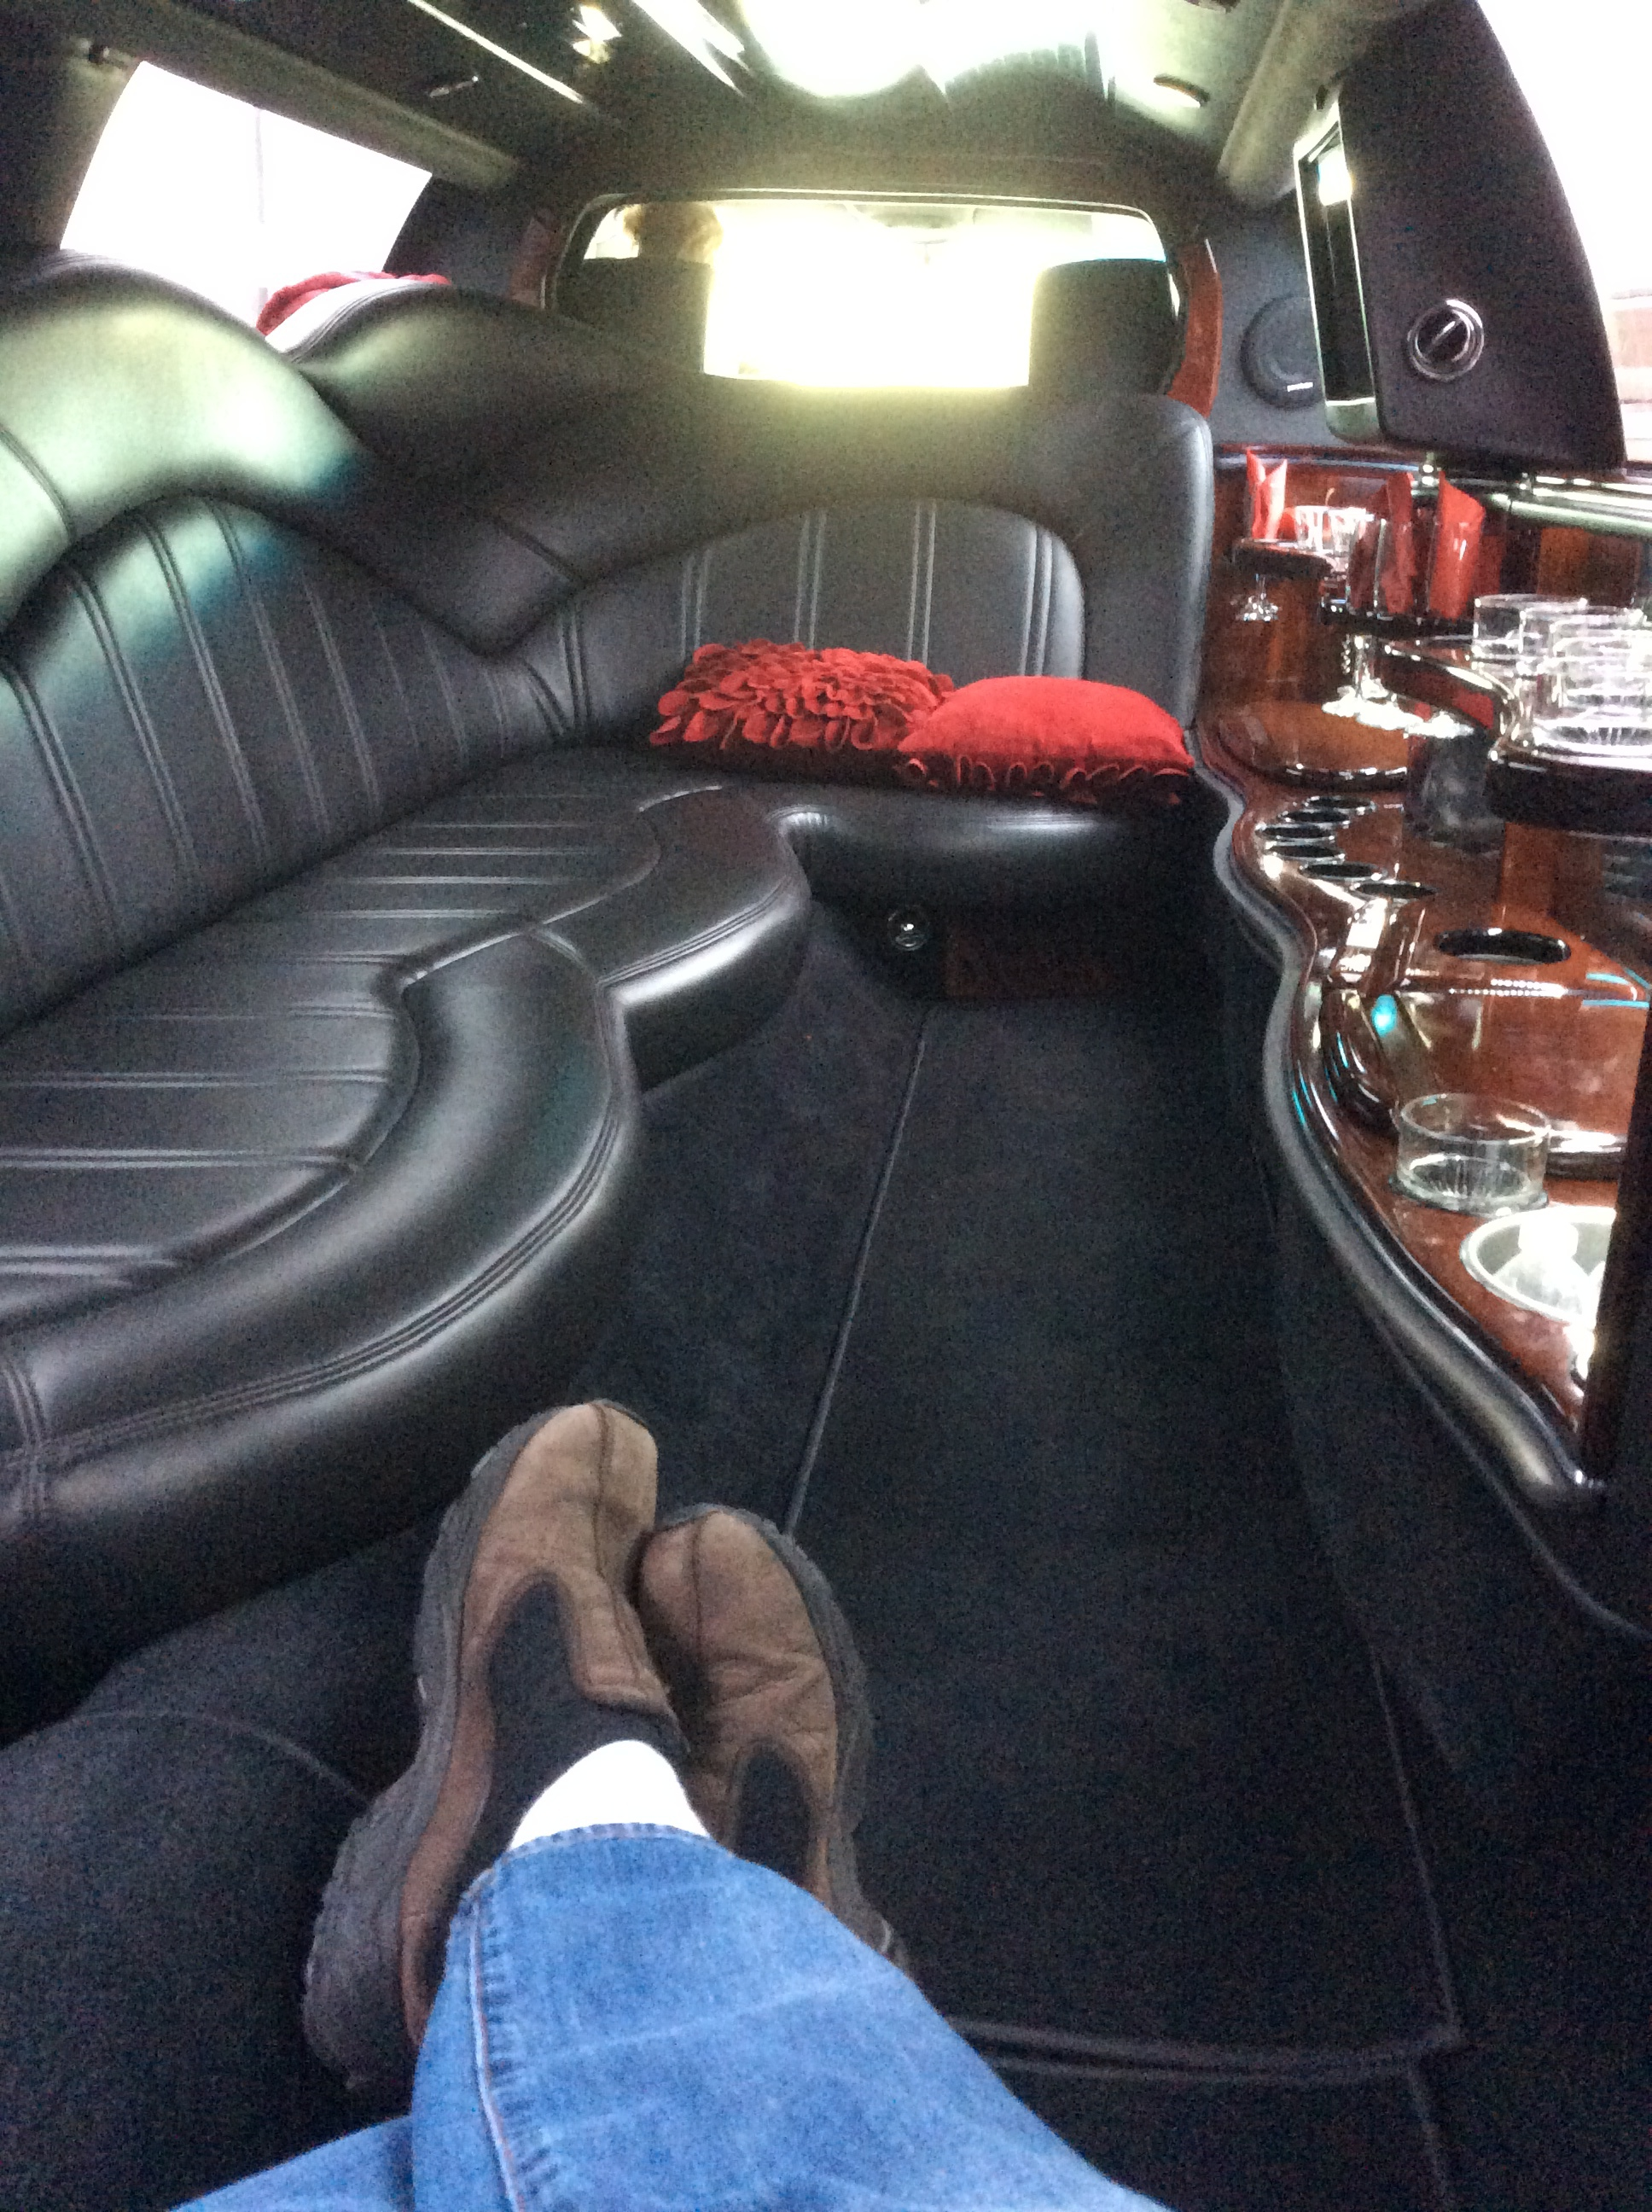 Chillin' in the stretch limo